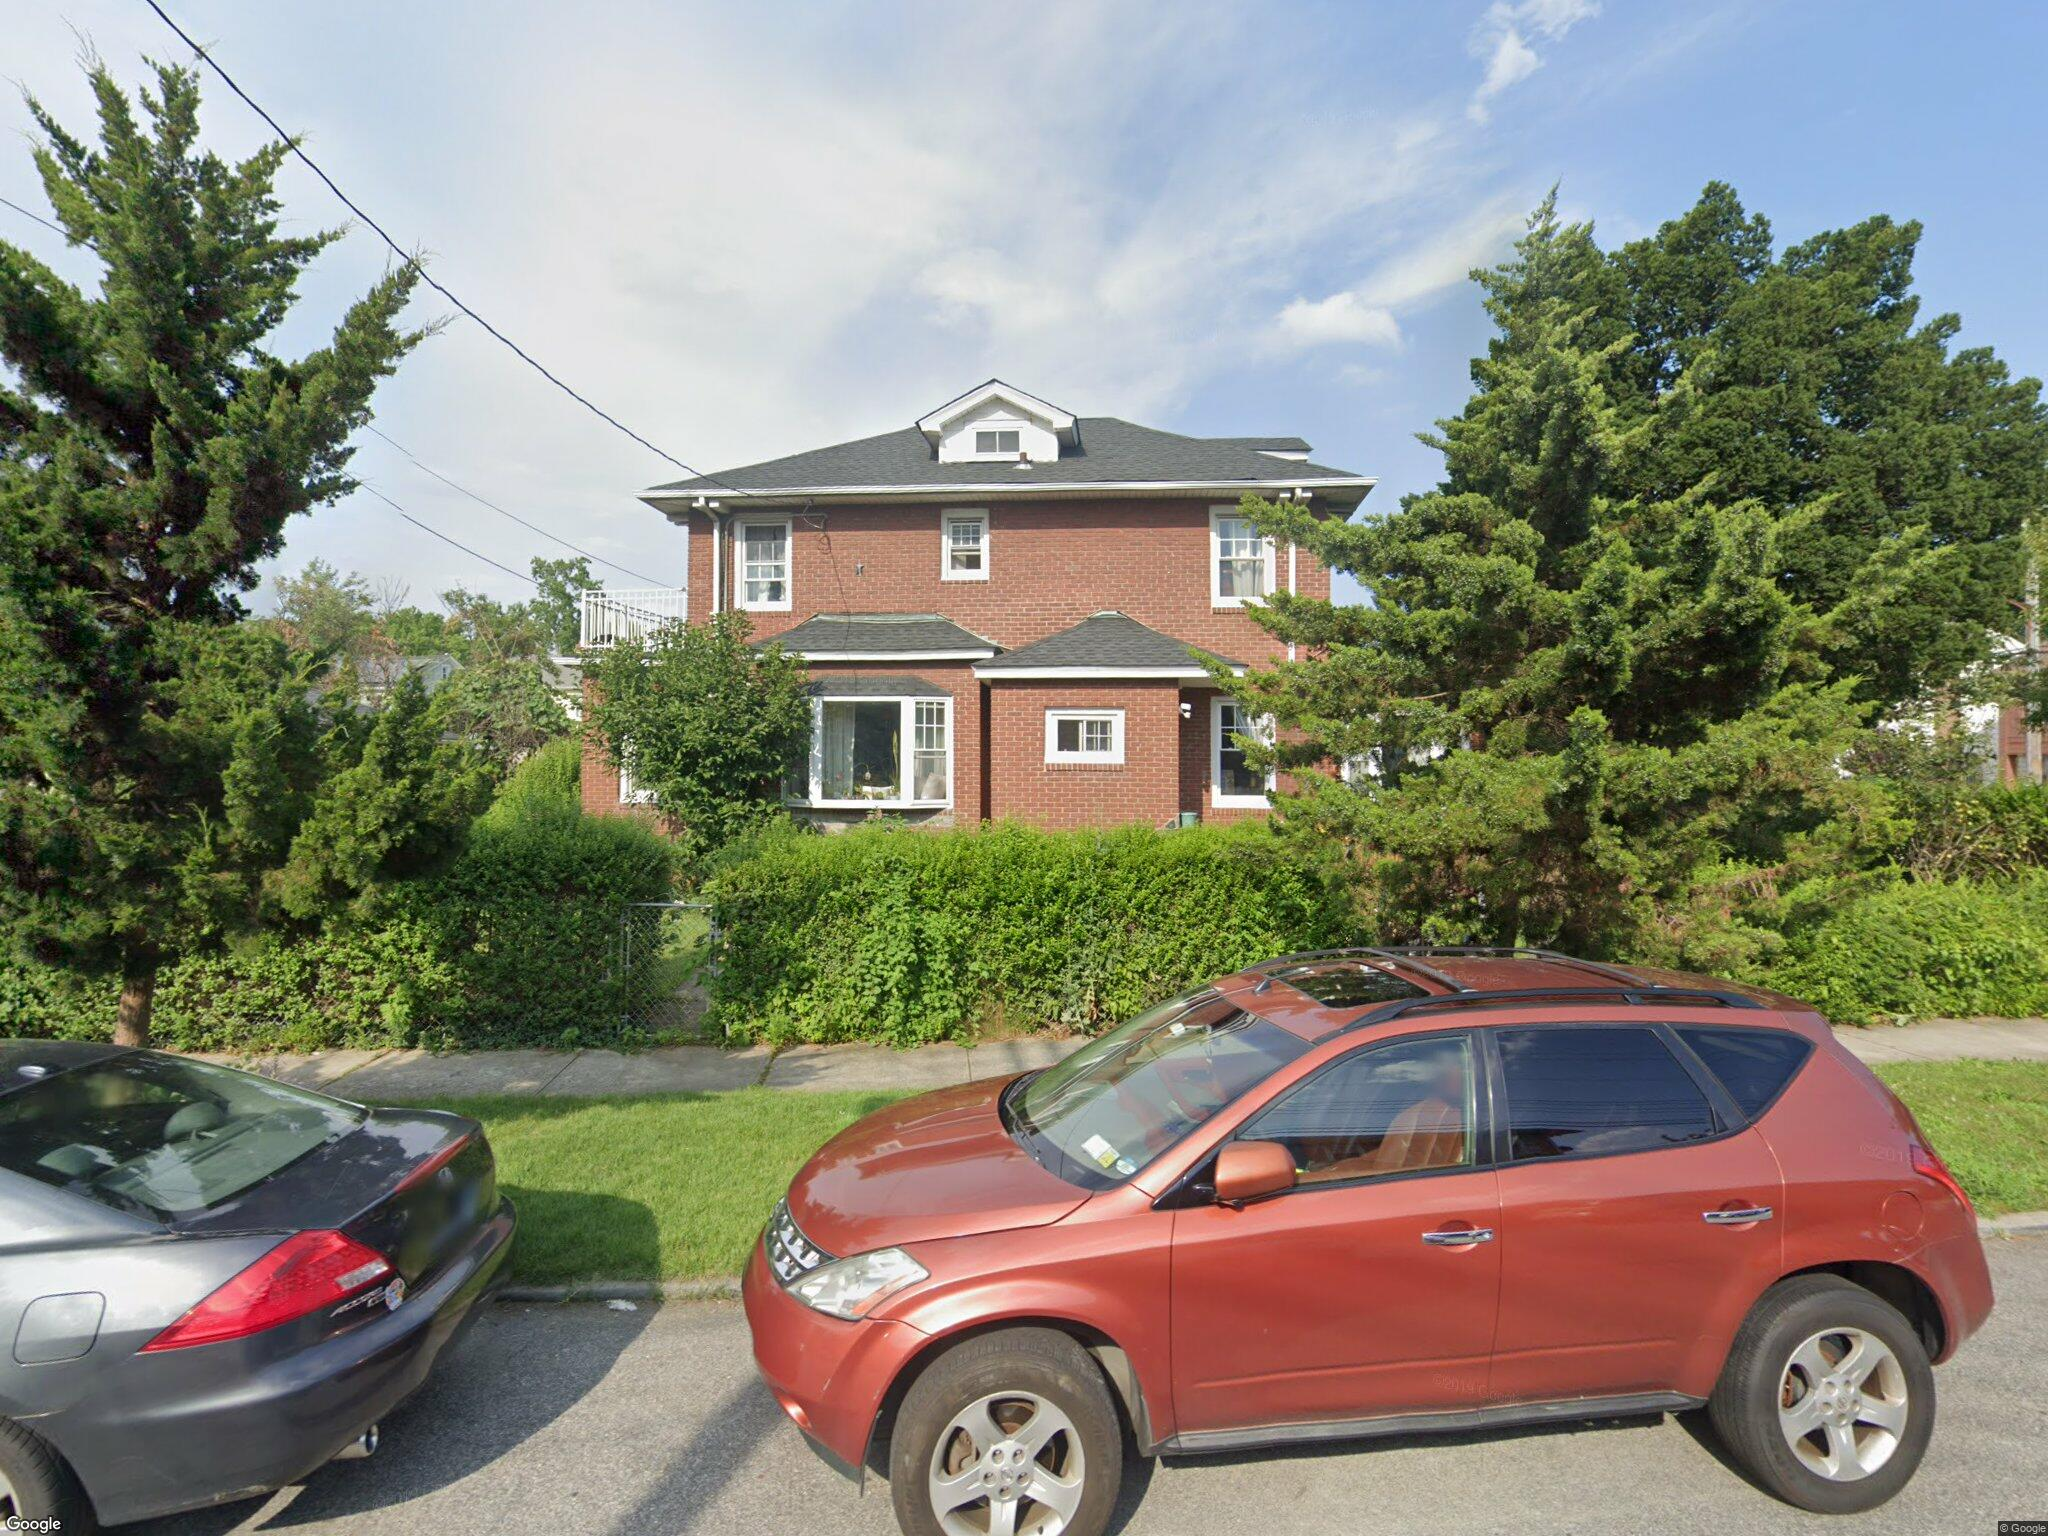 21003 Hollis Ave, Jamaica, NY 11429 | Trulia